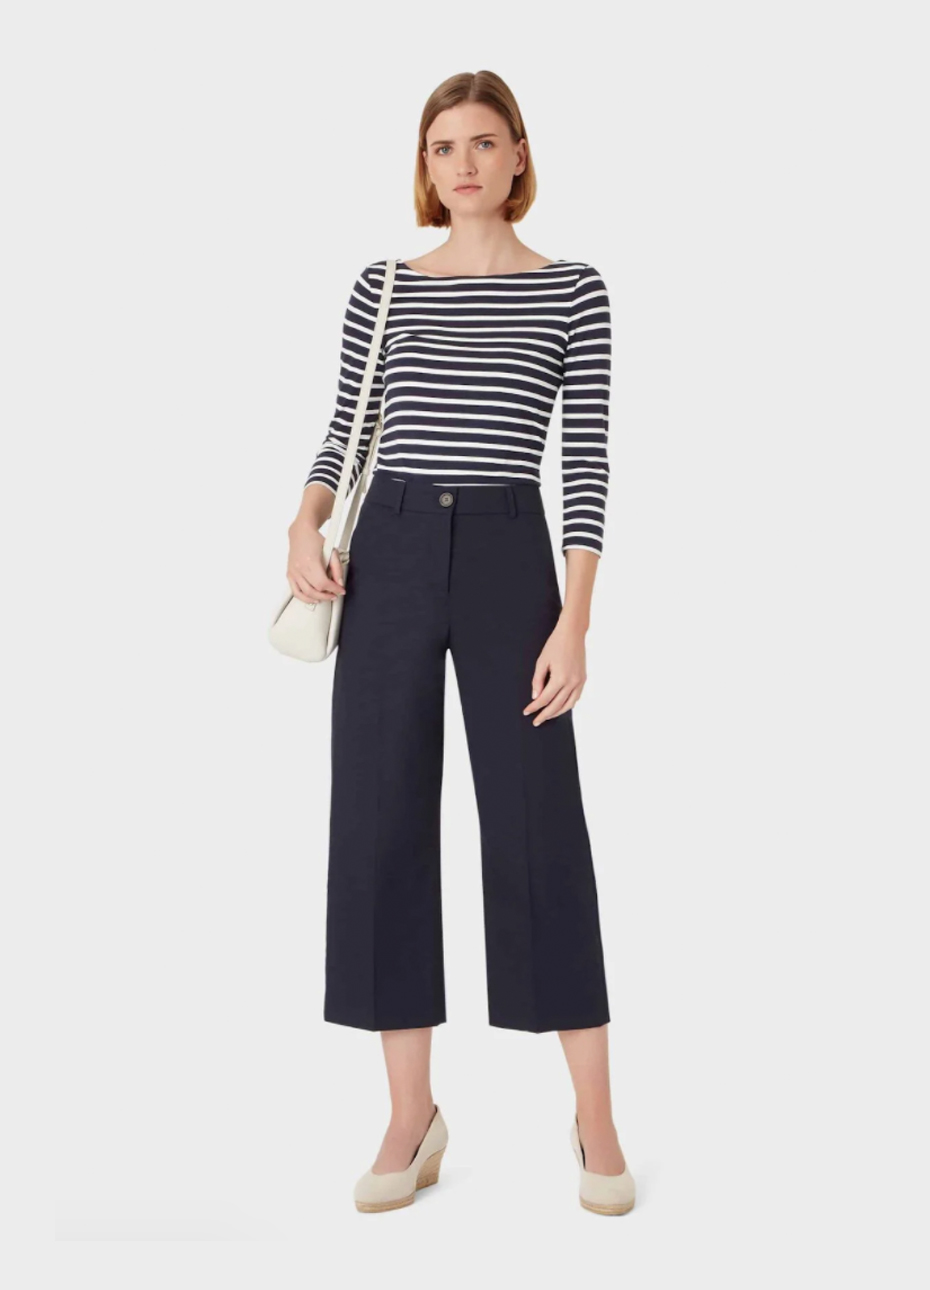 Mid-sleeve top with black and white stripes paired with black wide trousers for women, wedge espadrilles in nude and a white crossbody bag.